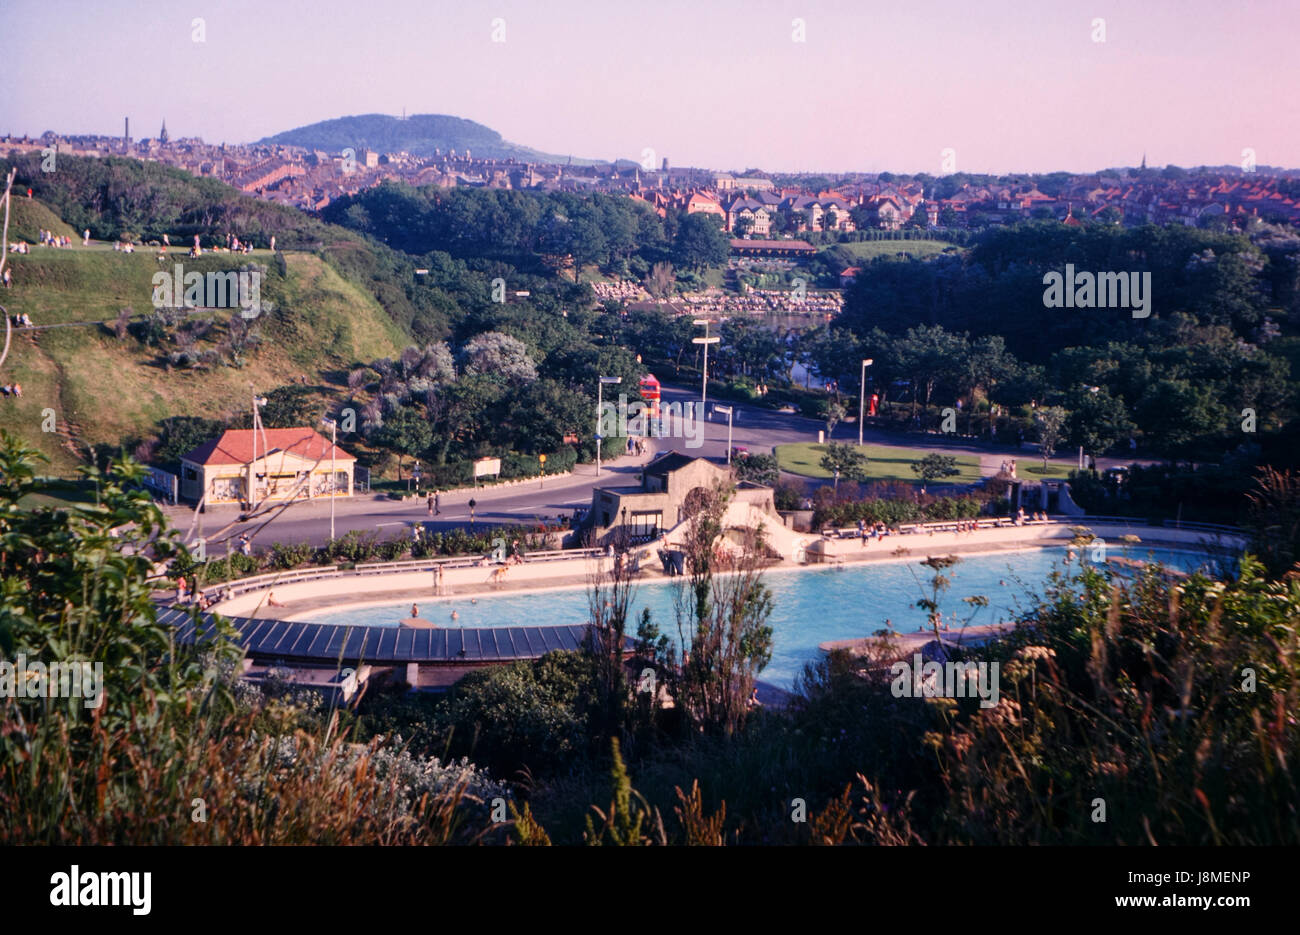 Vintage image of North Bay bathing pool in Scarborough taken in July 1963 - the bathing pool has since been replace - Stock Image